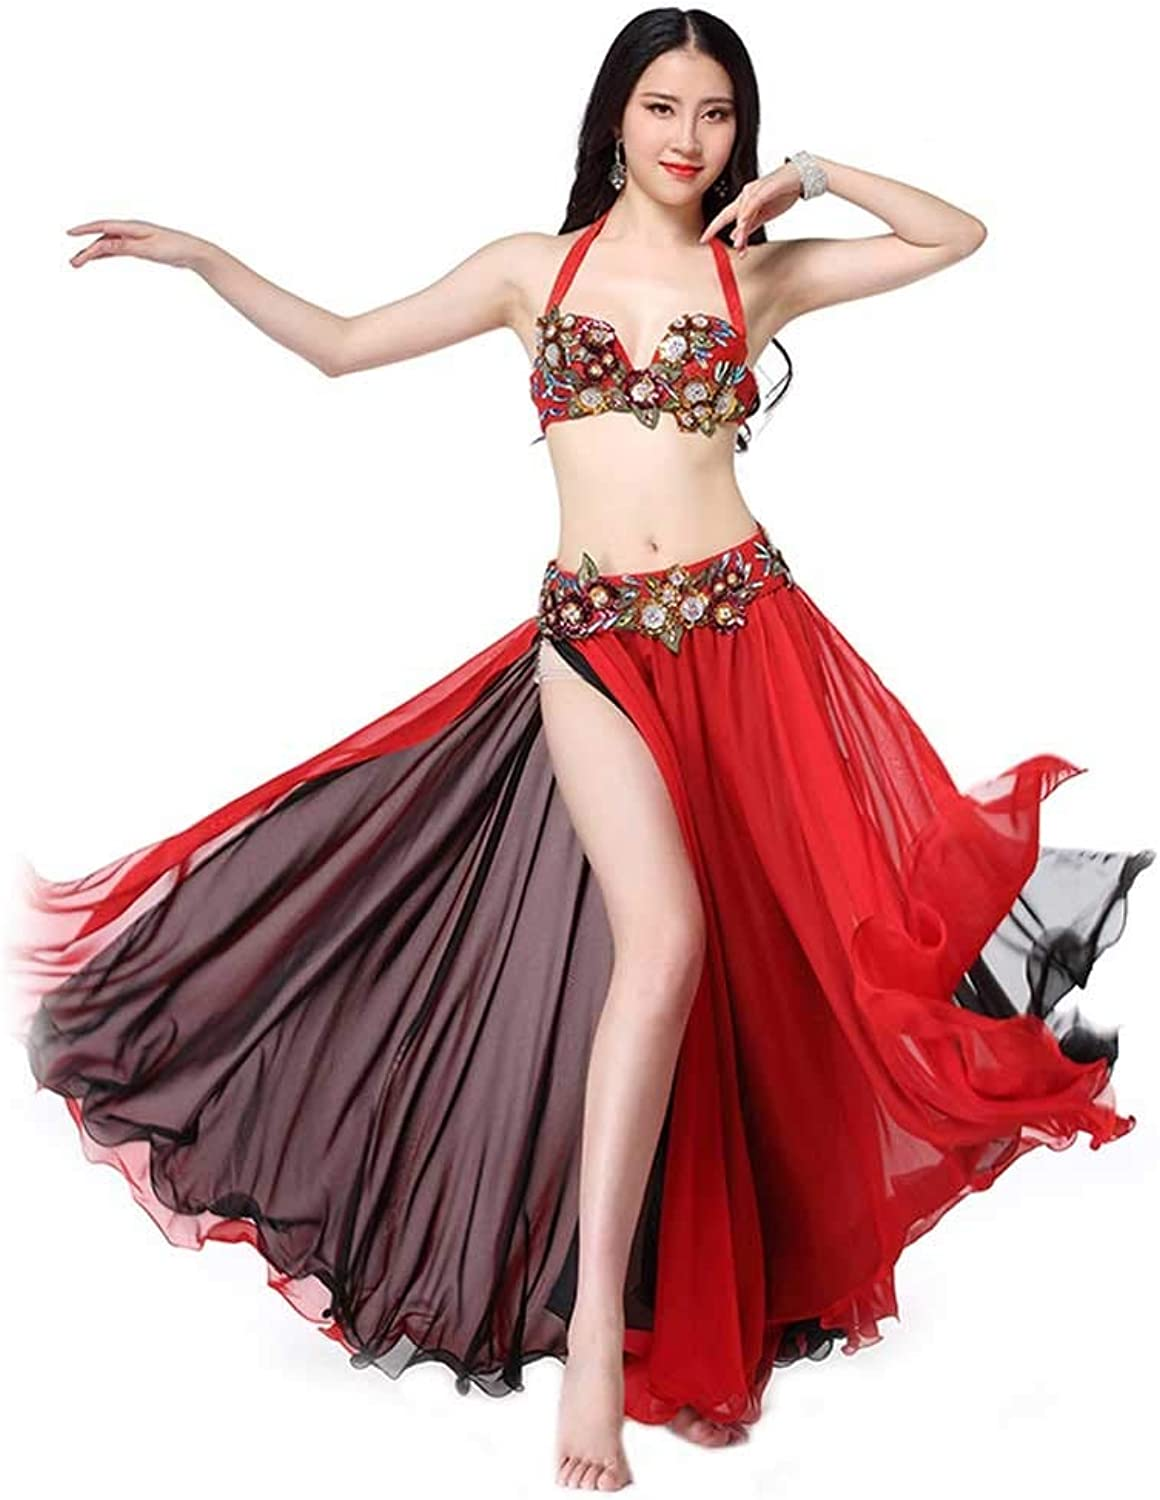 YTS Belly Dance Set Adult Female Costume Sequin Embroidery Performance Costume